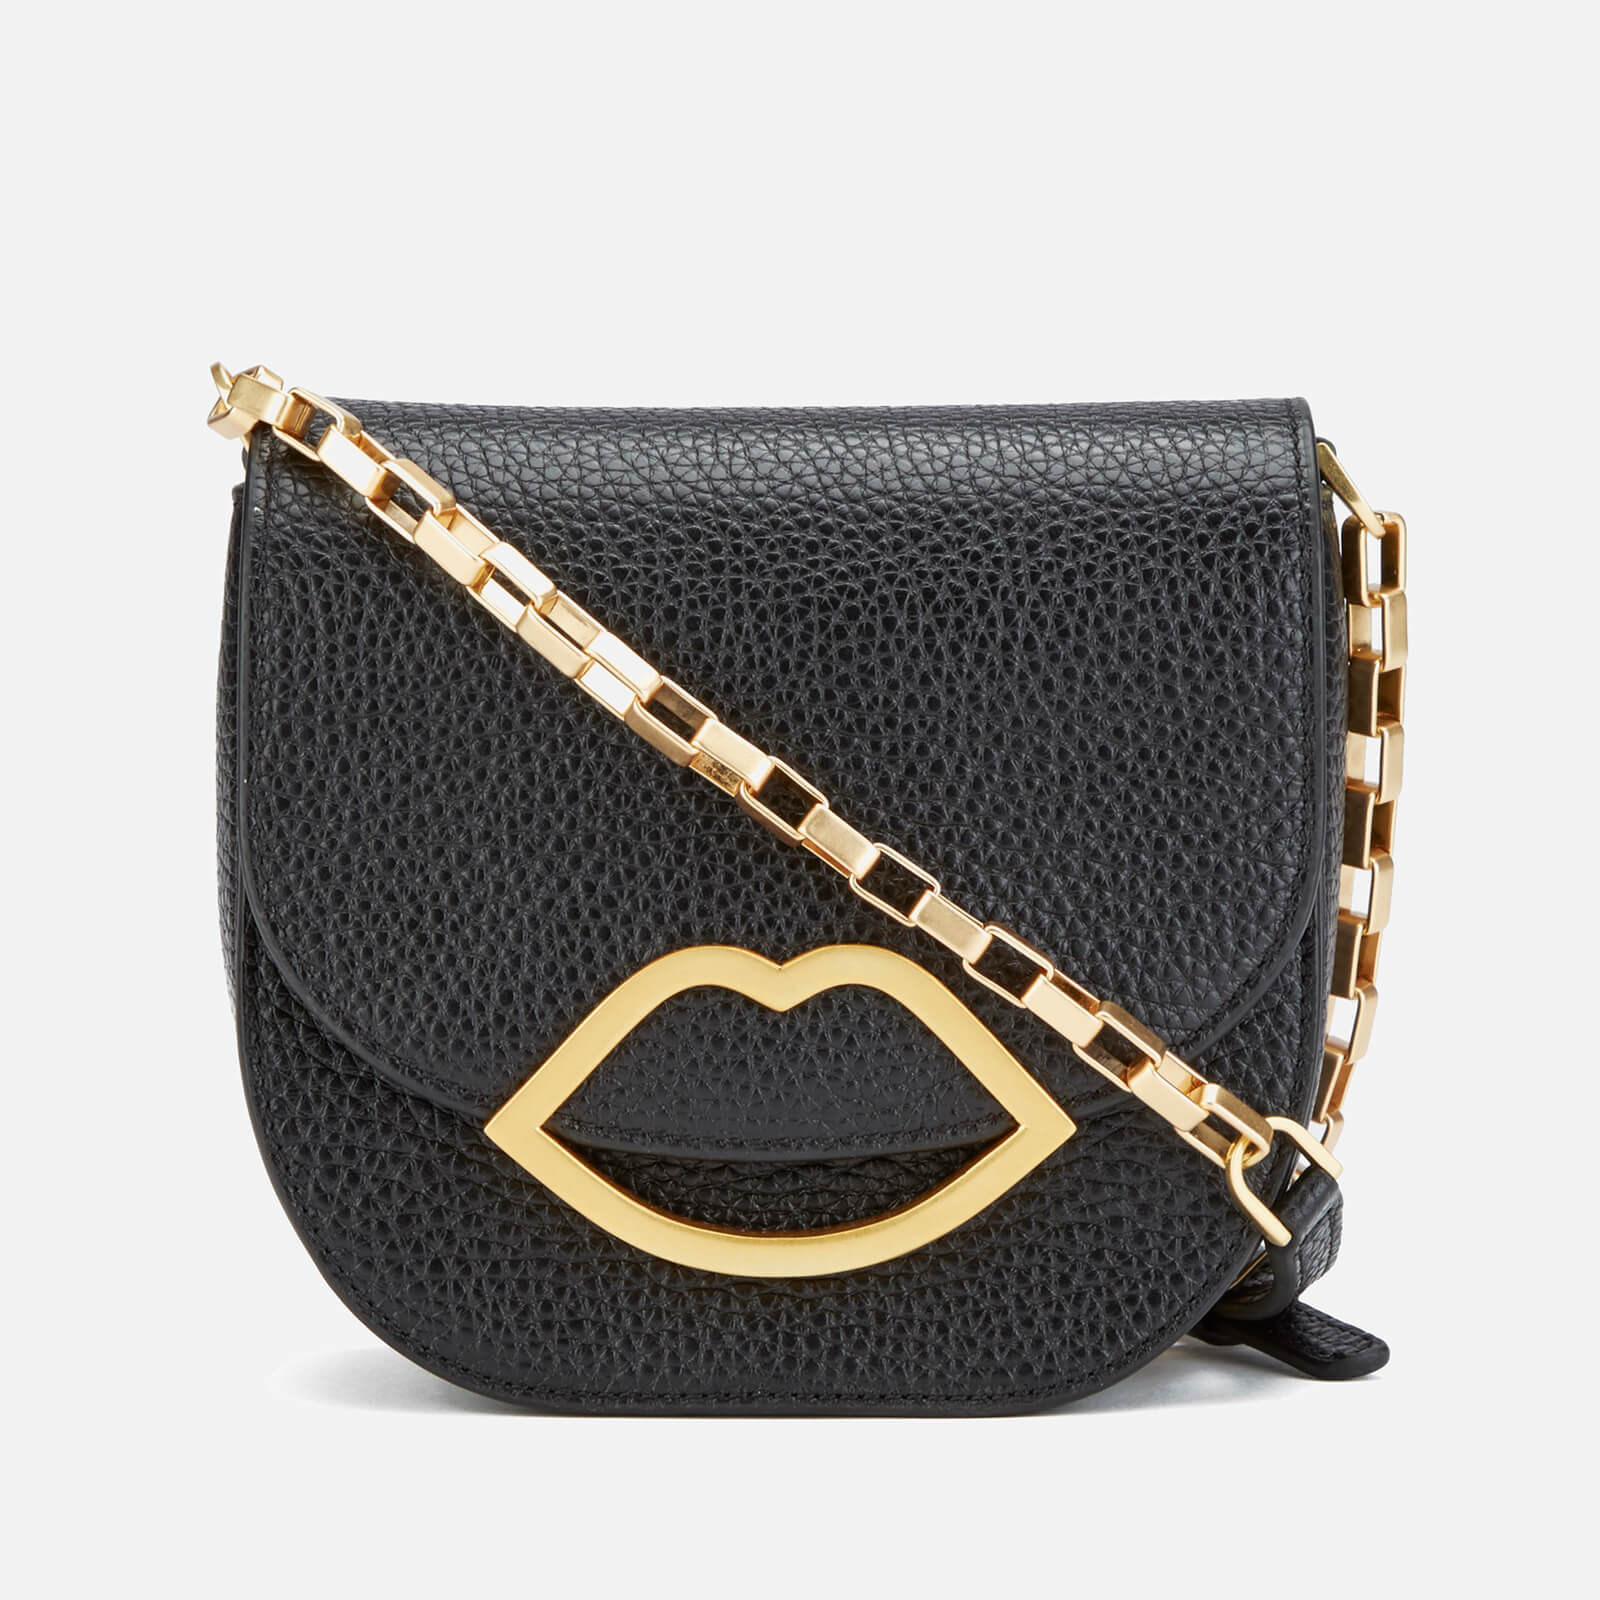 7a1c57f23 Lulu Guinness Women's Amy Small Crossbody Bag - Black - Free UK Delivery  over £50